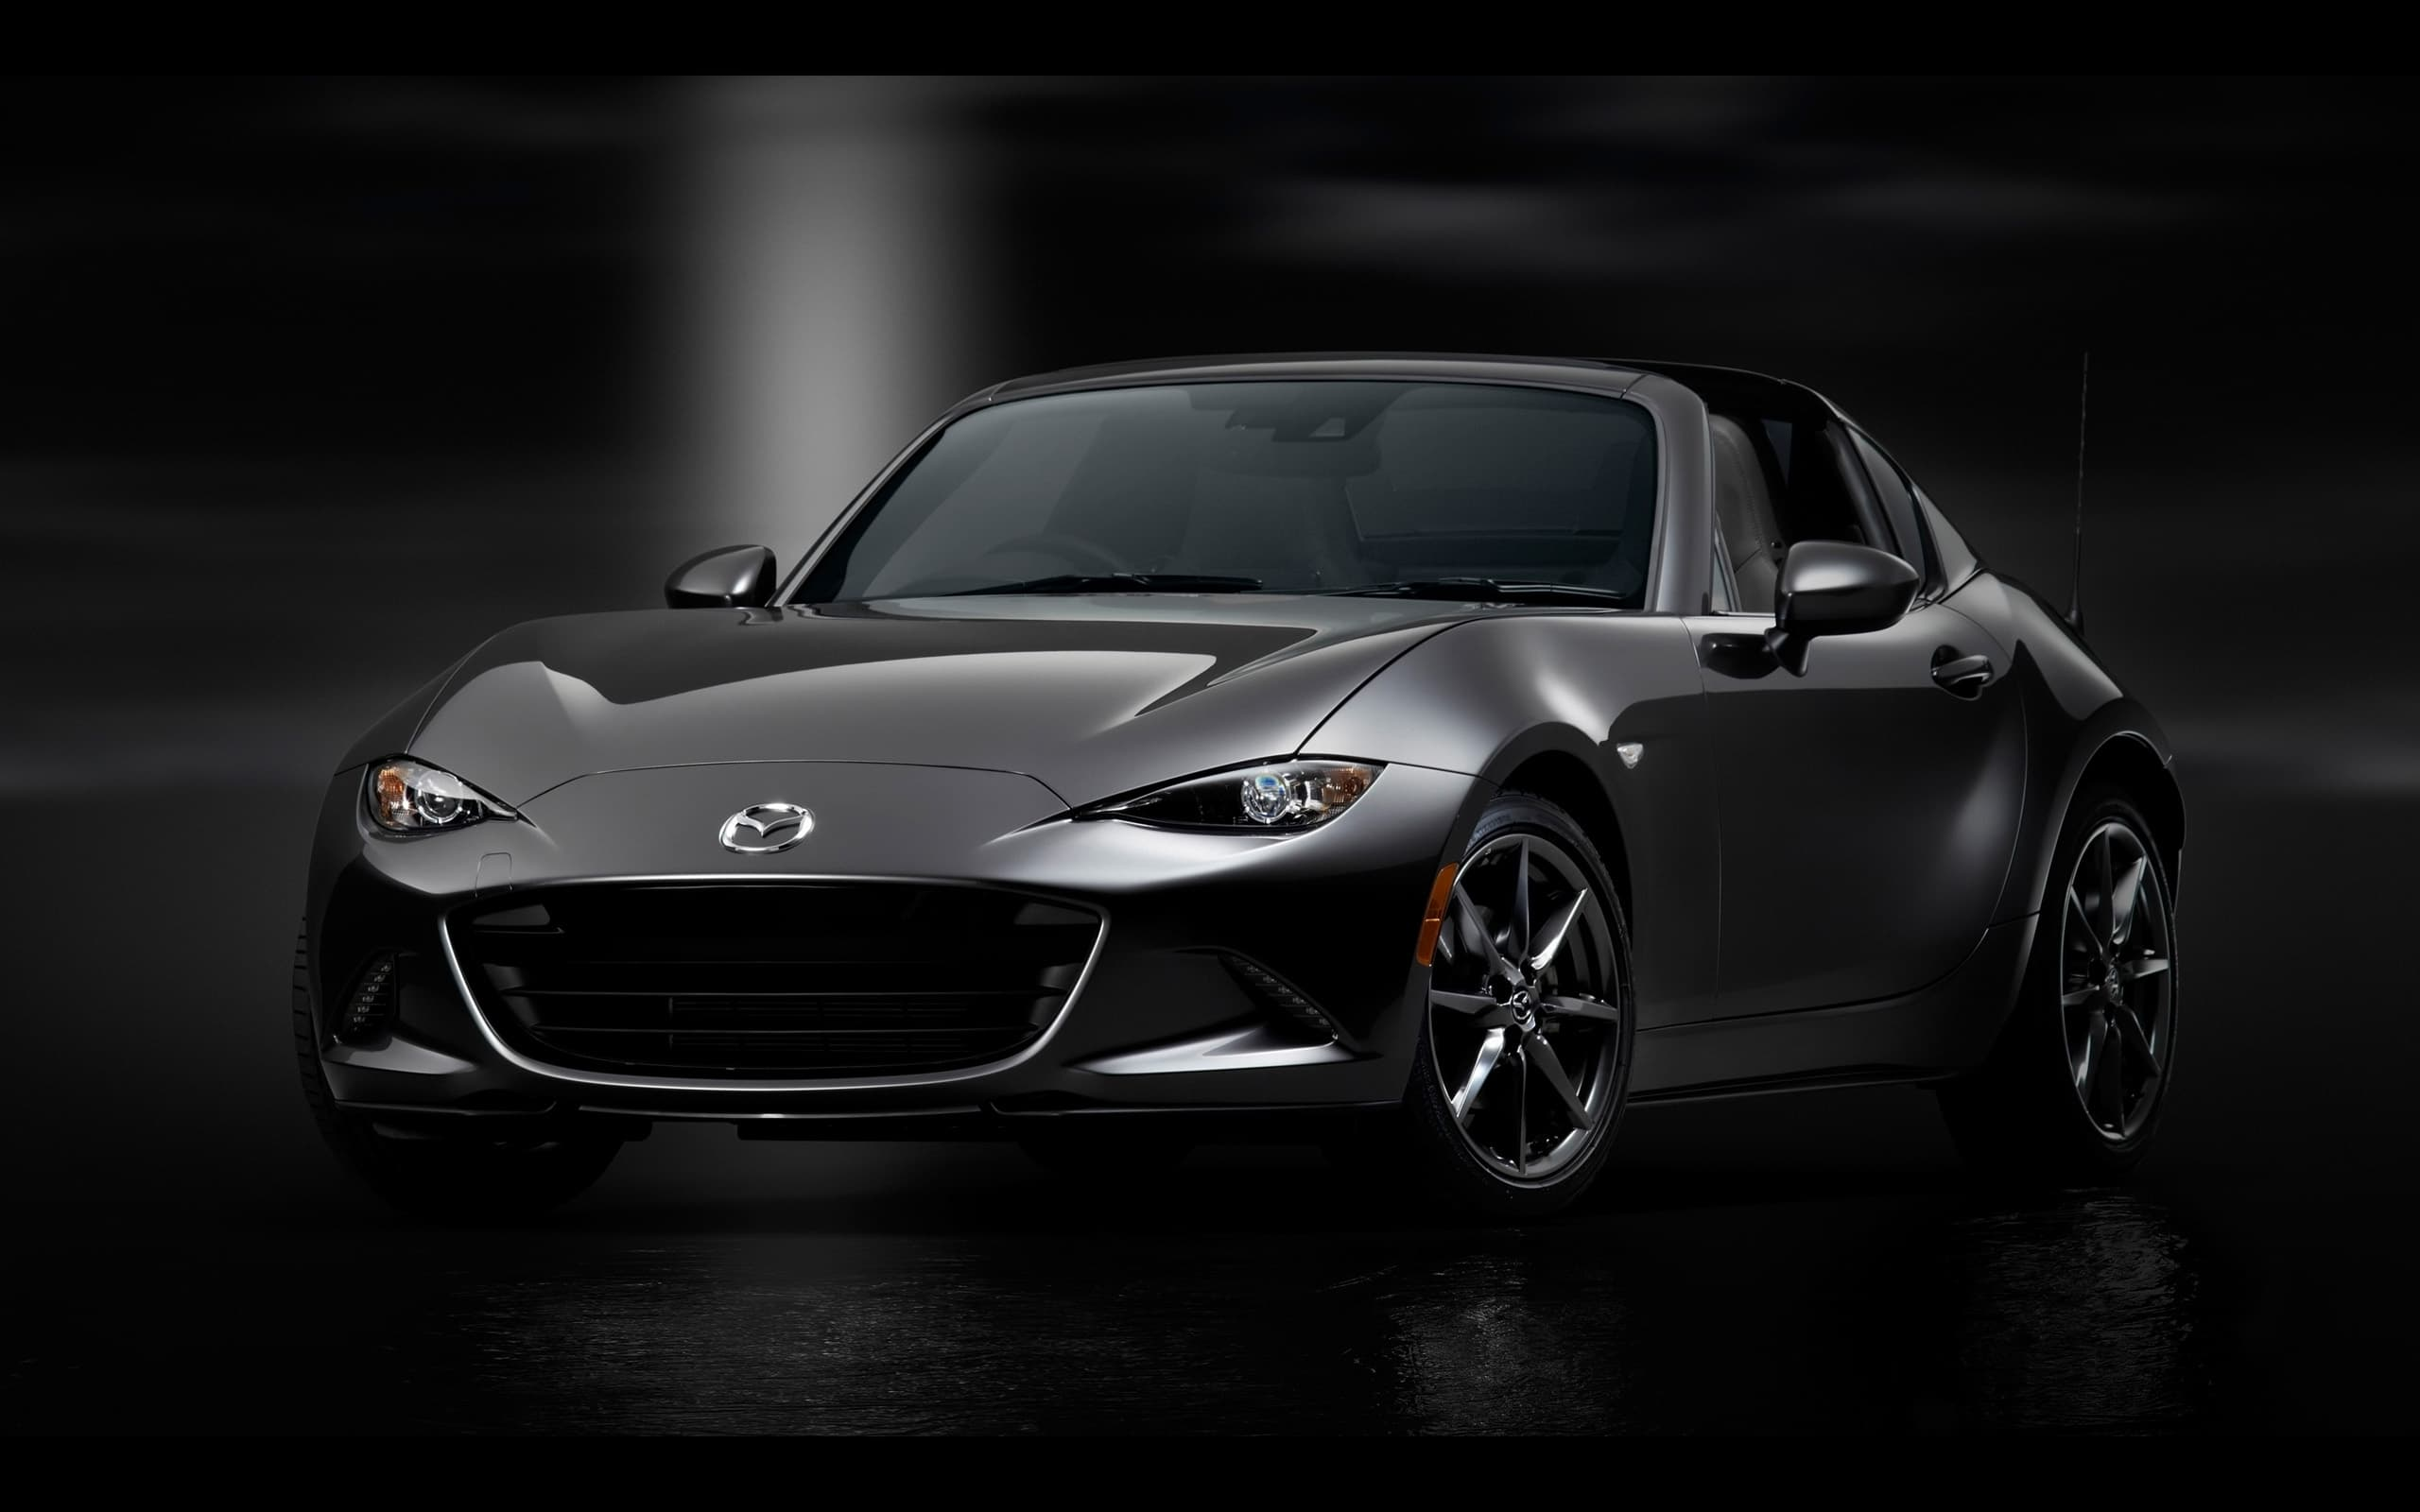 98 Mazda Mx 5 Wallpapers On Wallpapersafari